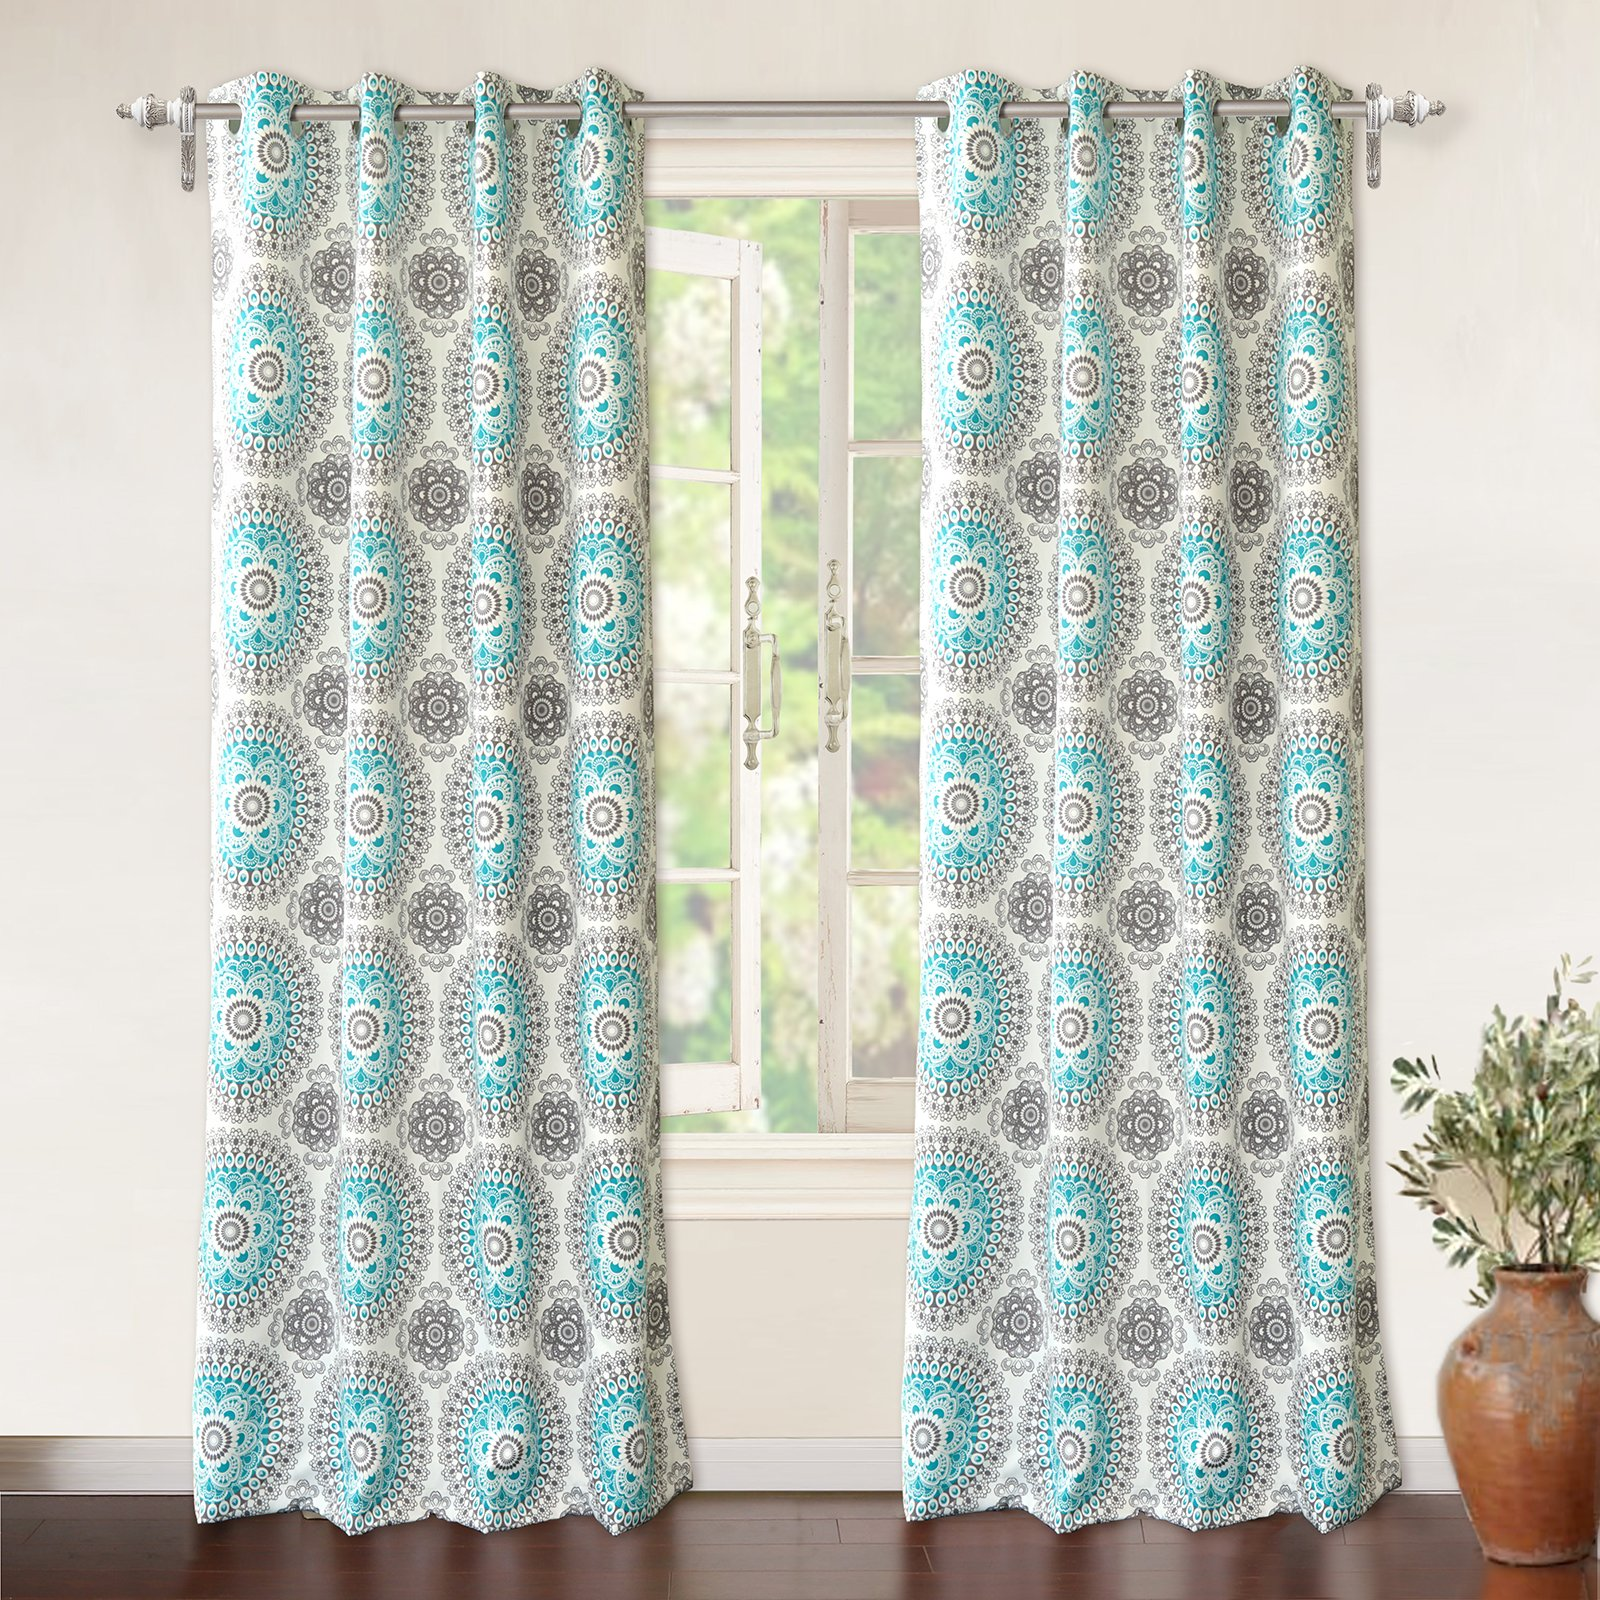 DriftAway Bella Medallion and Floral Pattern Room Darkening and Thermal Insulated Grommet Window Curtains 2 Panels Each 52 Inch by 84 Inch Aqua and Gray by DriftAway